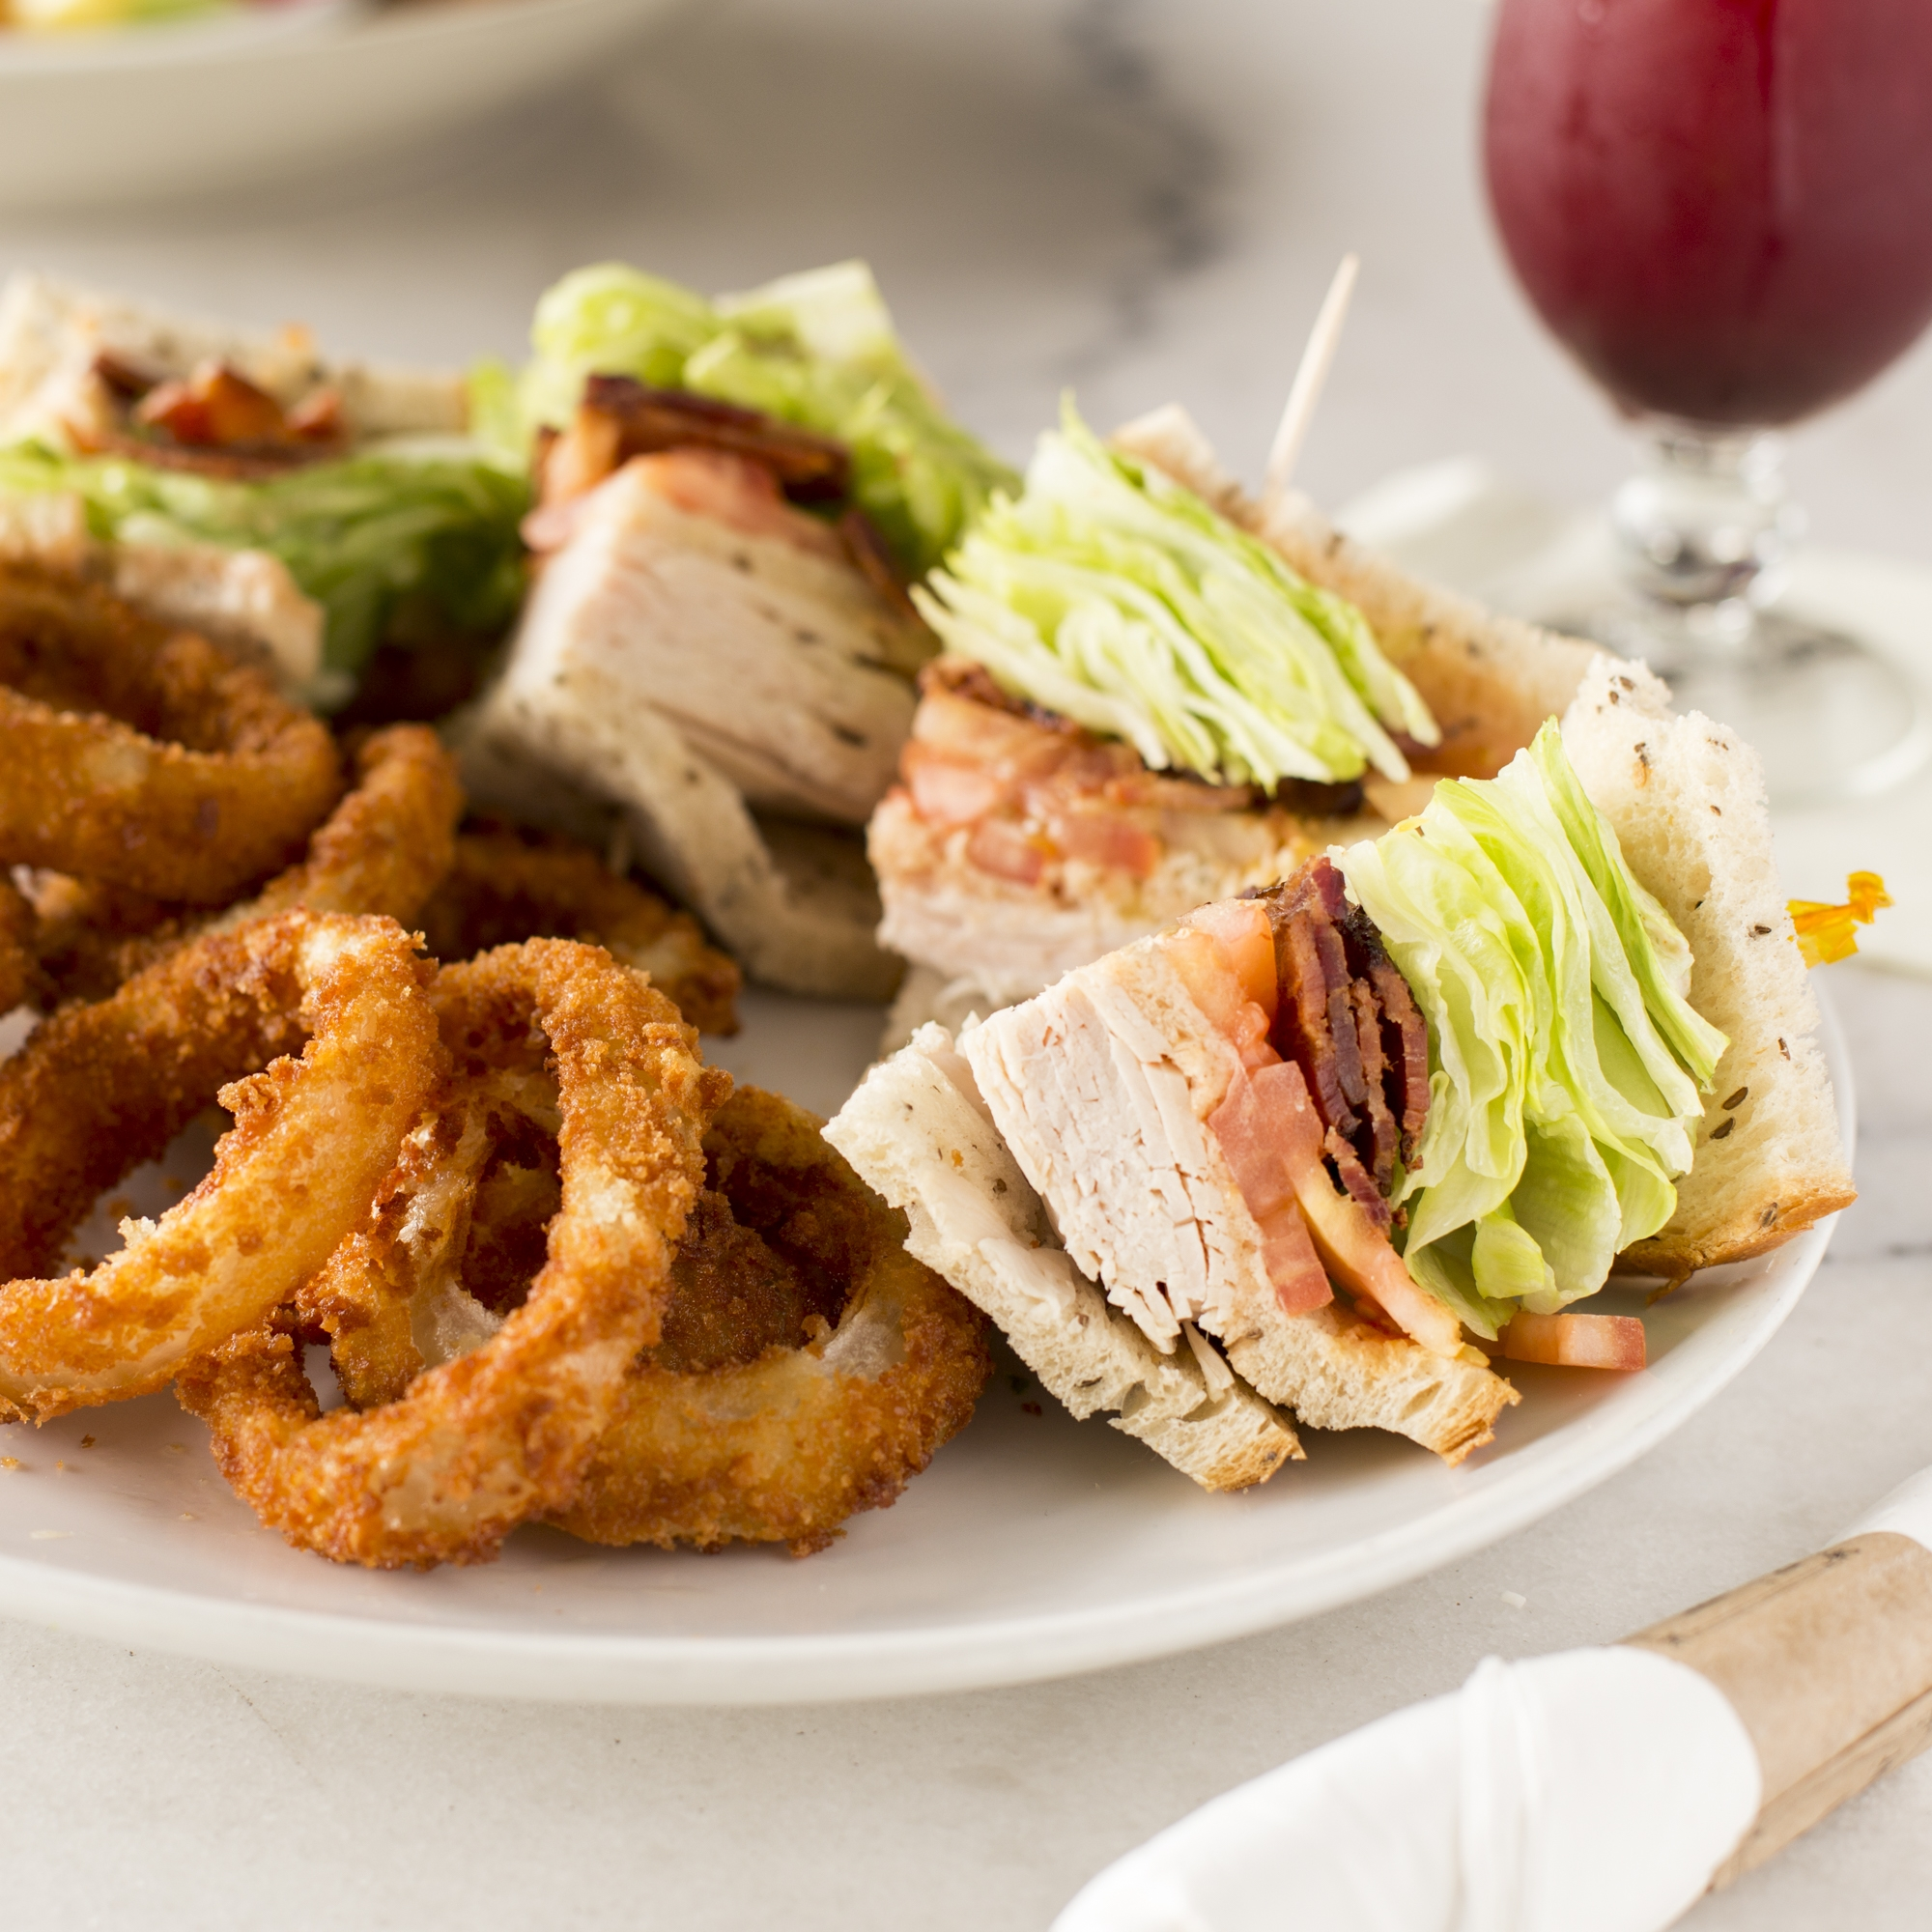 Katella Club Sandwich with onion rings